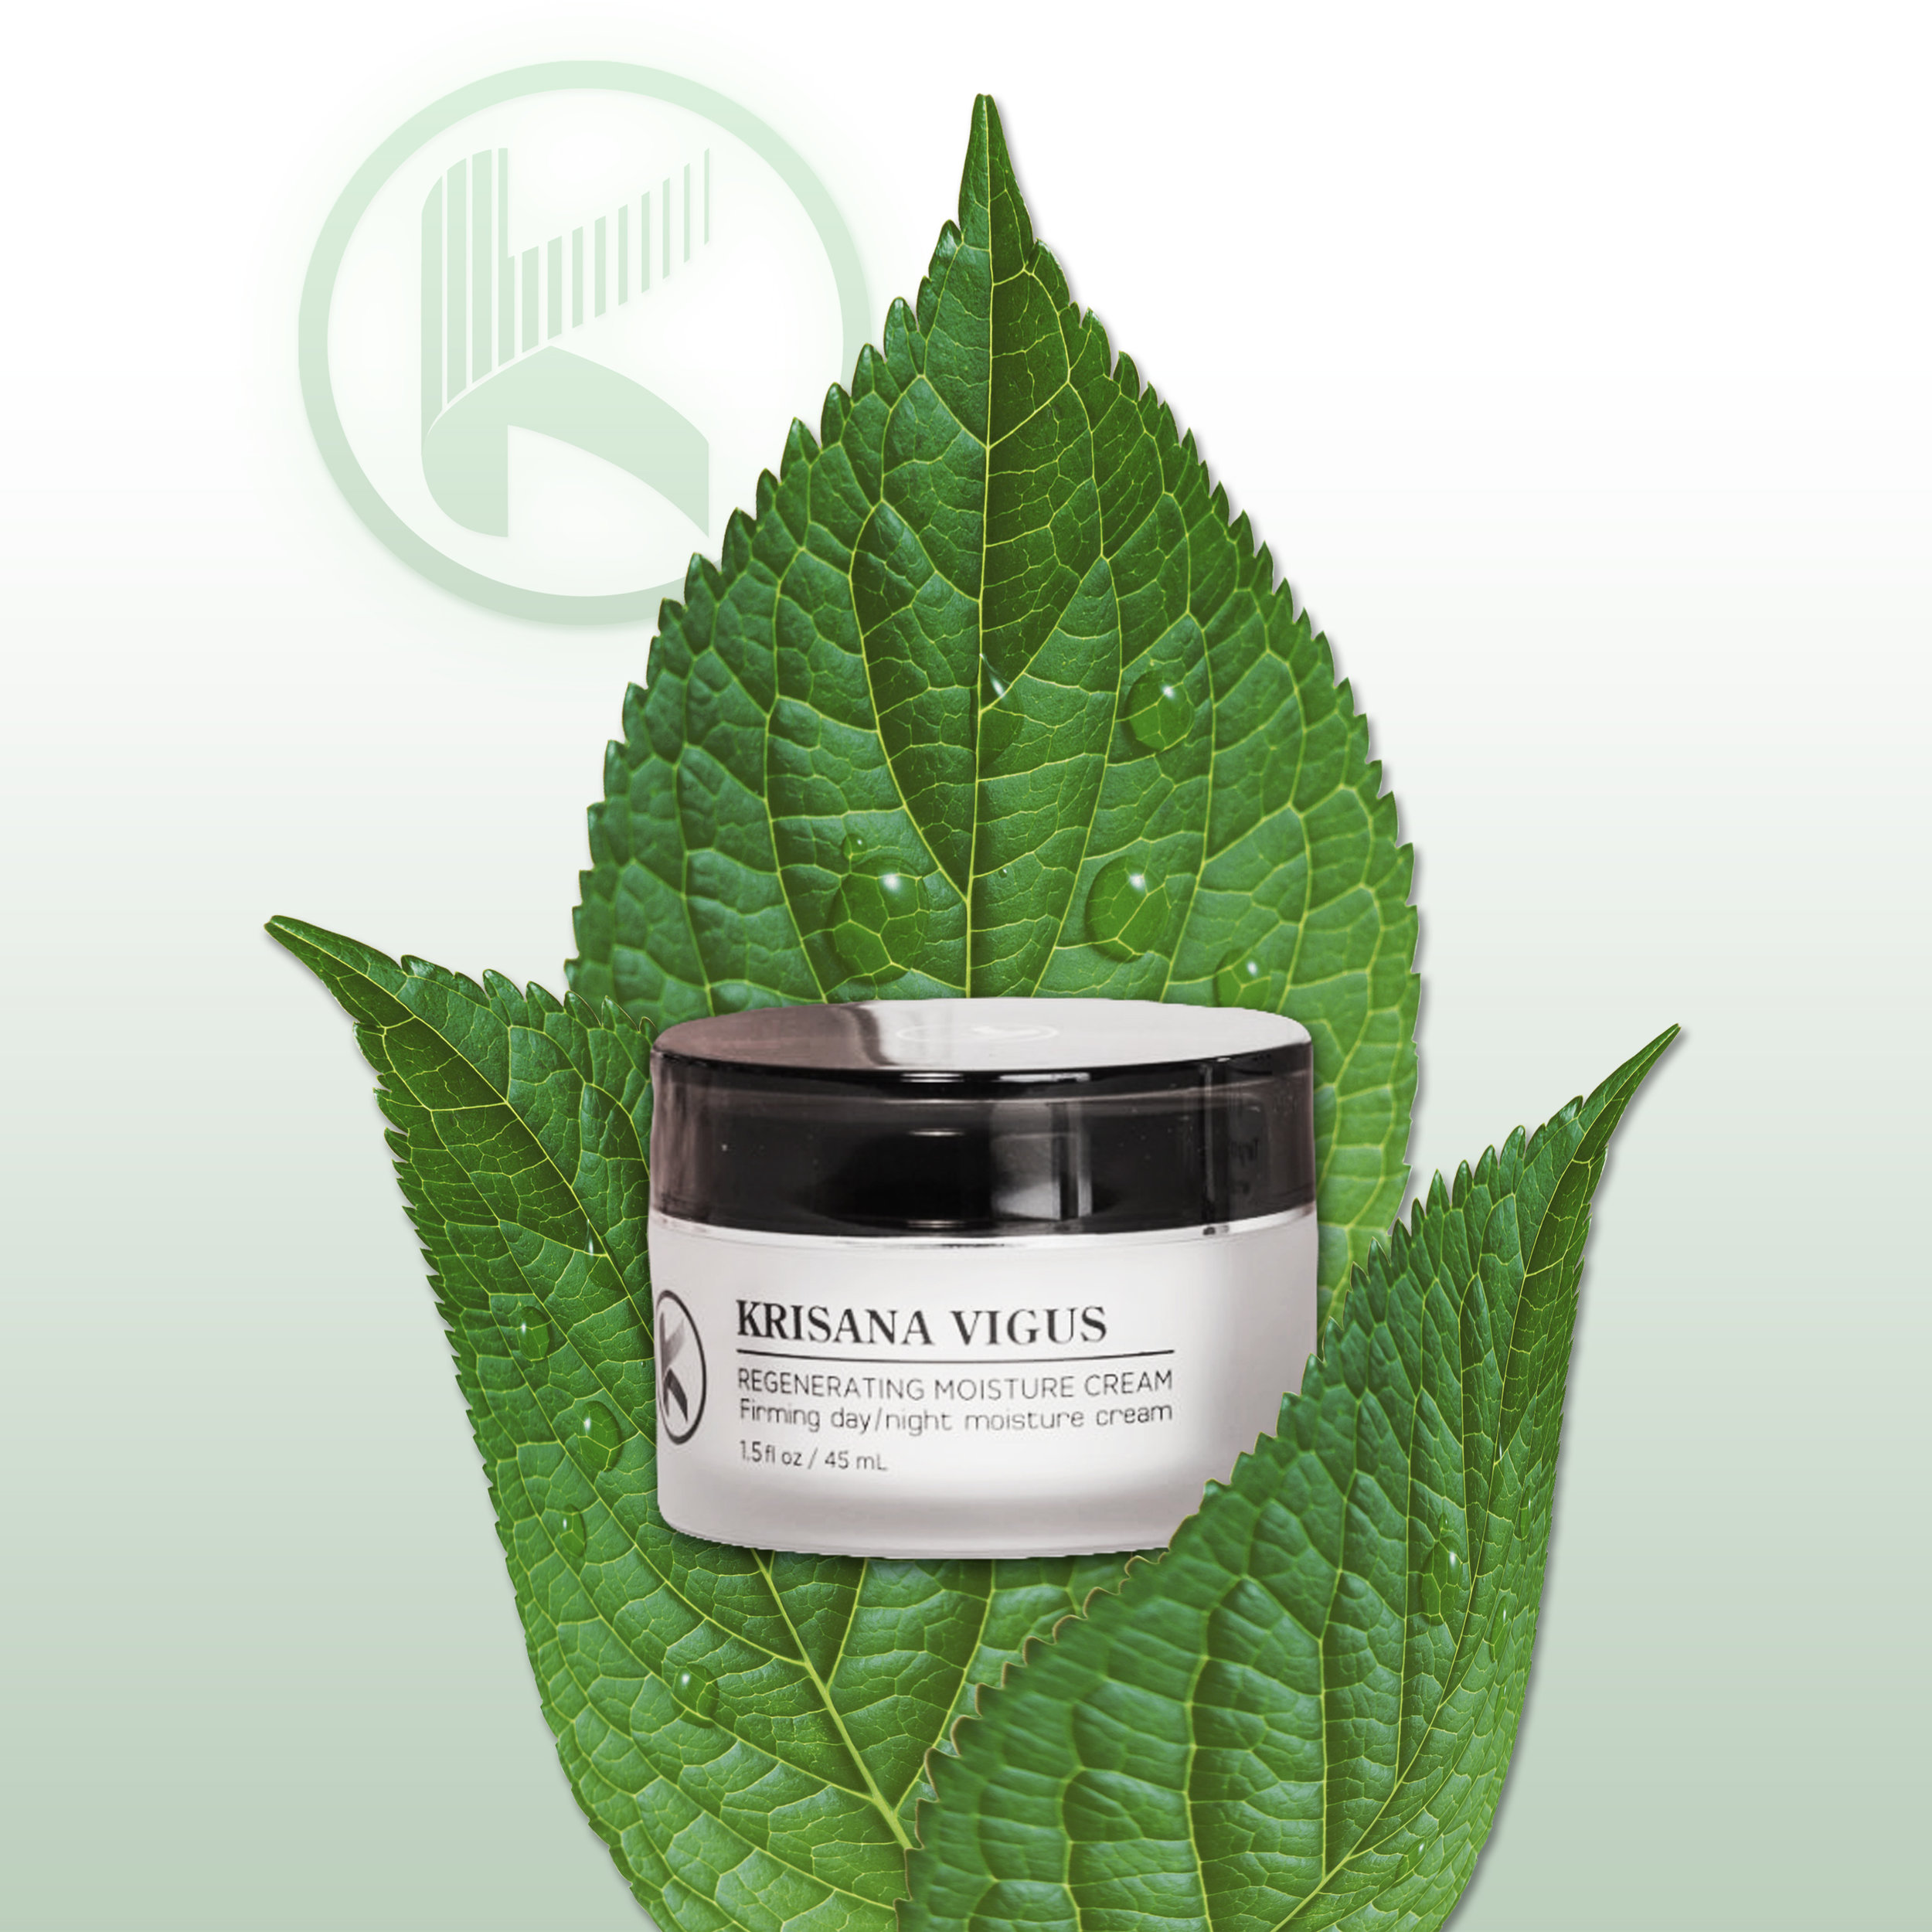 Product Benefits - Clinical studies of the apple stem cell ingredients show a significant improvement in hydration, firming, and smoothingDecreases inflammation and chronic cell agingReduces the appearance of cutaneous wrinklesPromotes collagen and elastin synthesis to firm and tighten skinStimulates cell regeneration while replenishing the lipid barrierDelivers long-lasting moisturization leaving a silky, dewy finish and radiant appearance